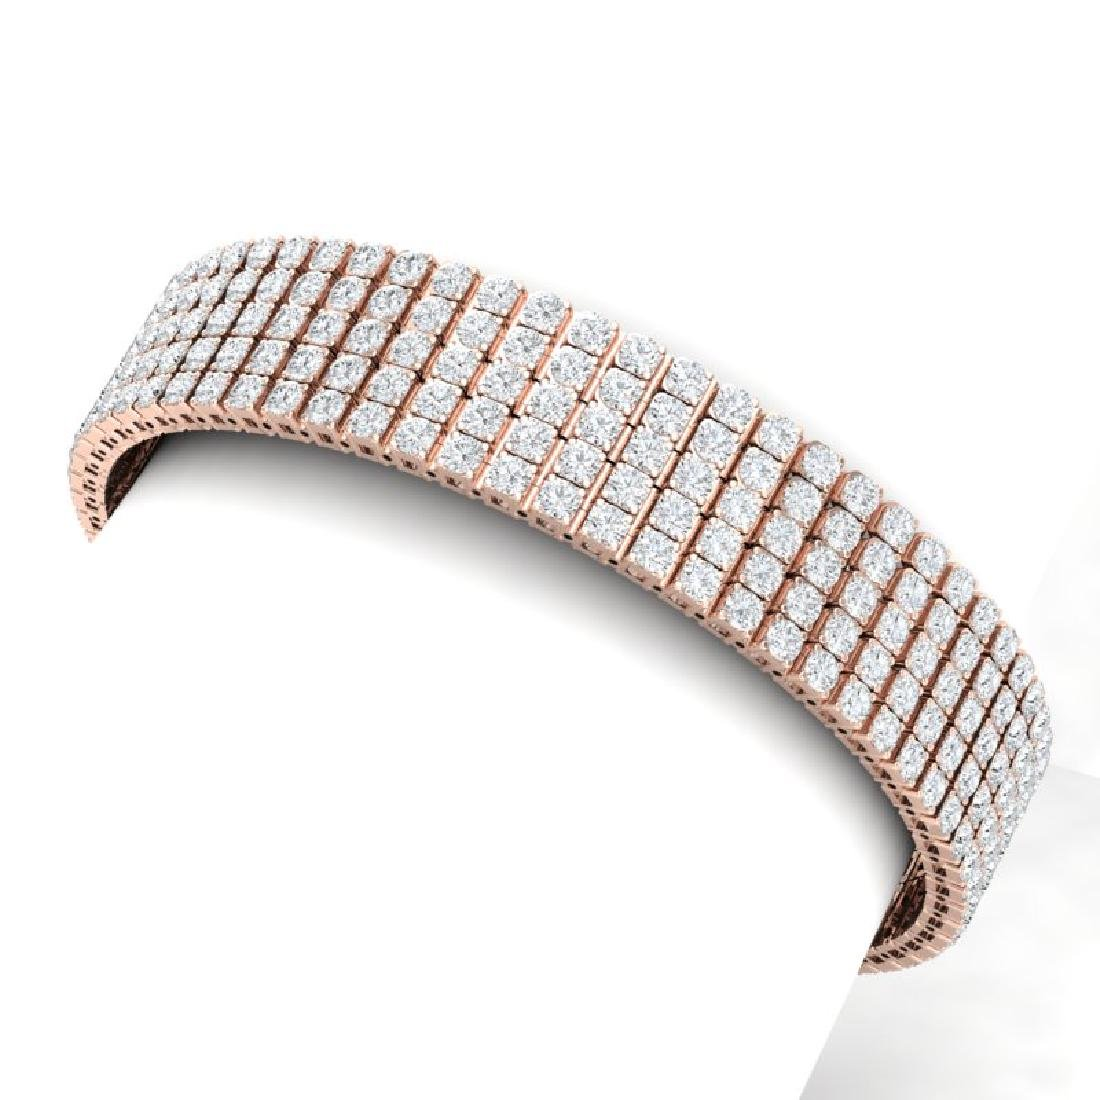 20 CTW Certified VS/SI Diamond Bracelet 18K Rose Gold